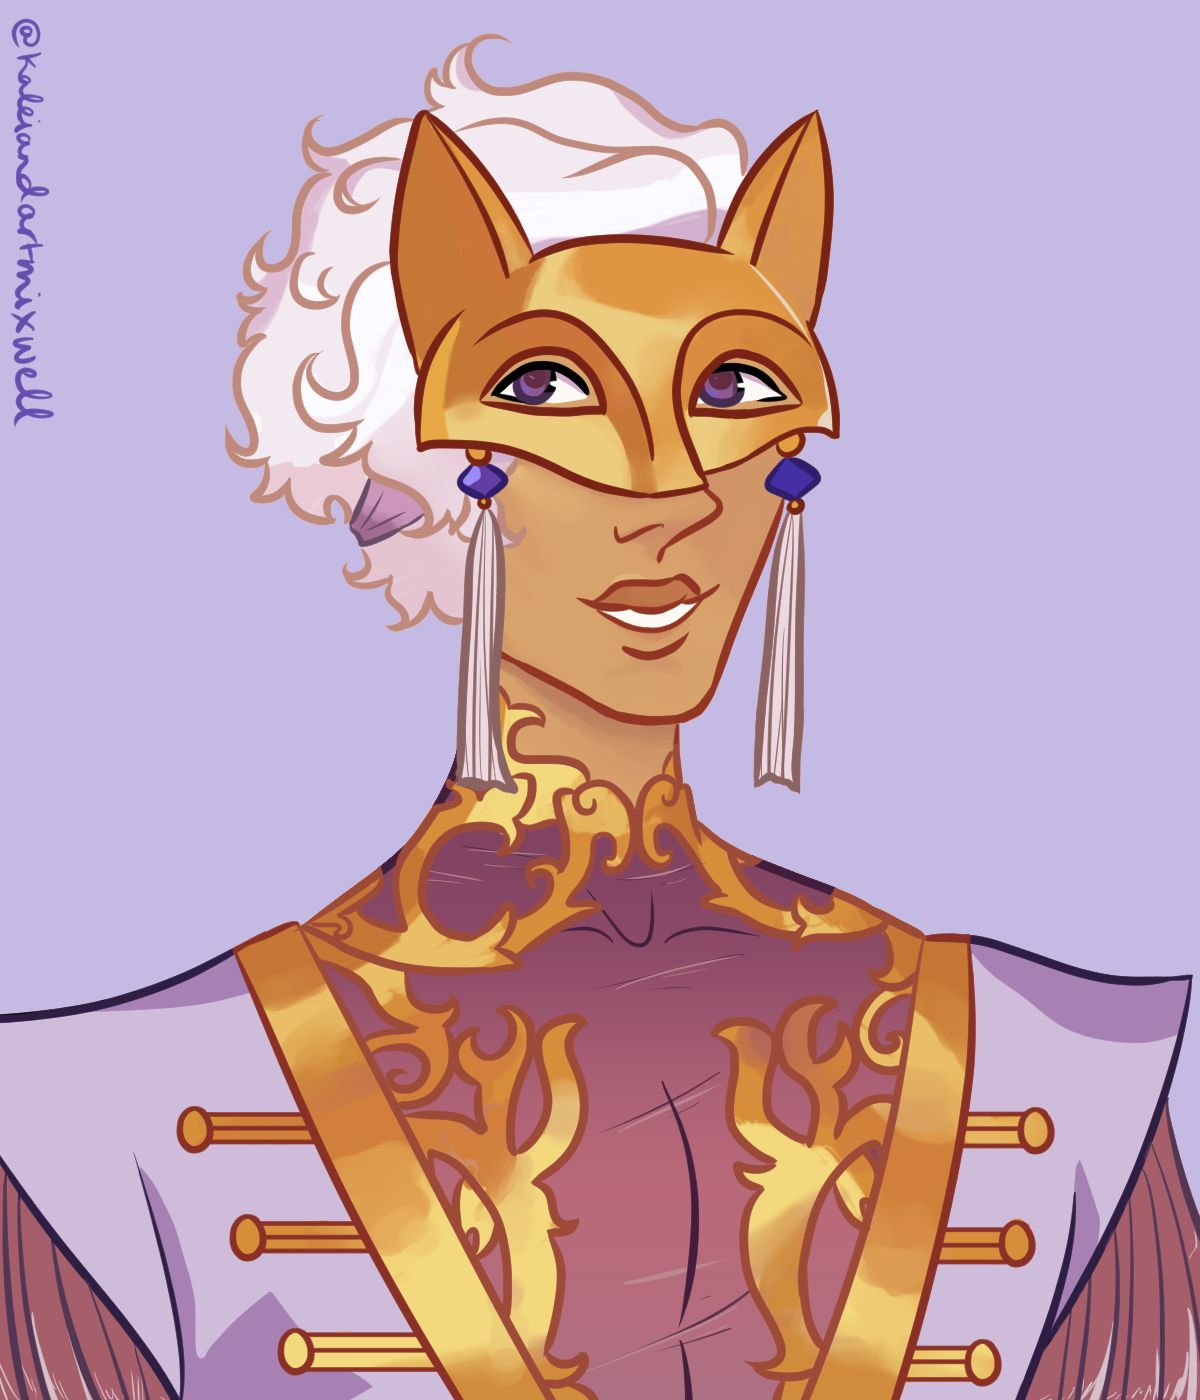 Asra from the Arcana Game Character, Disney characters